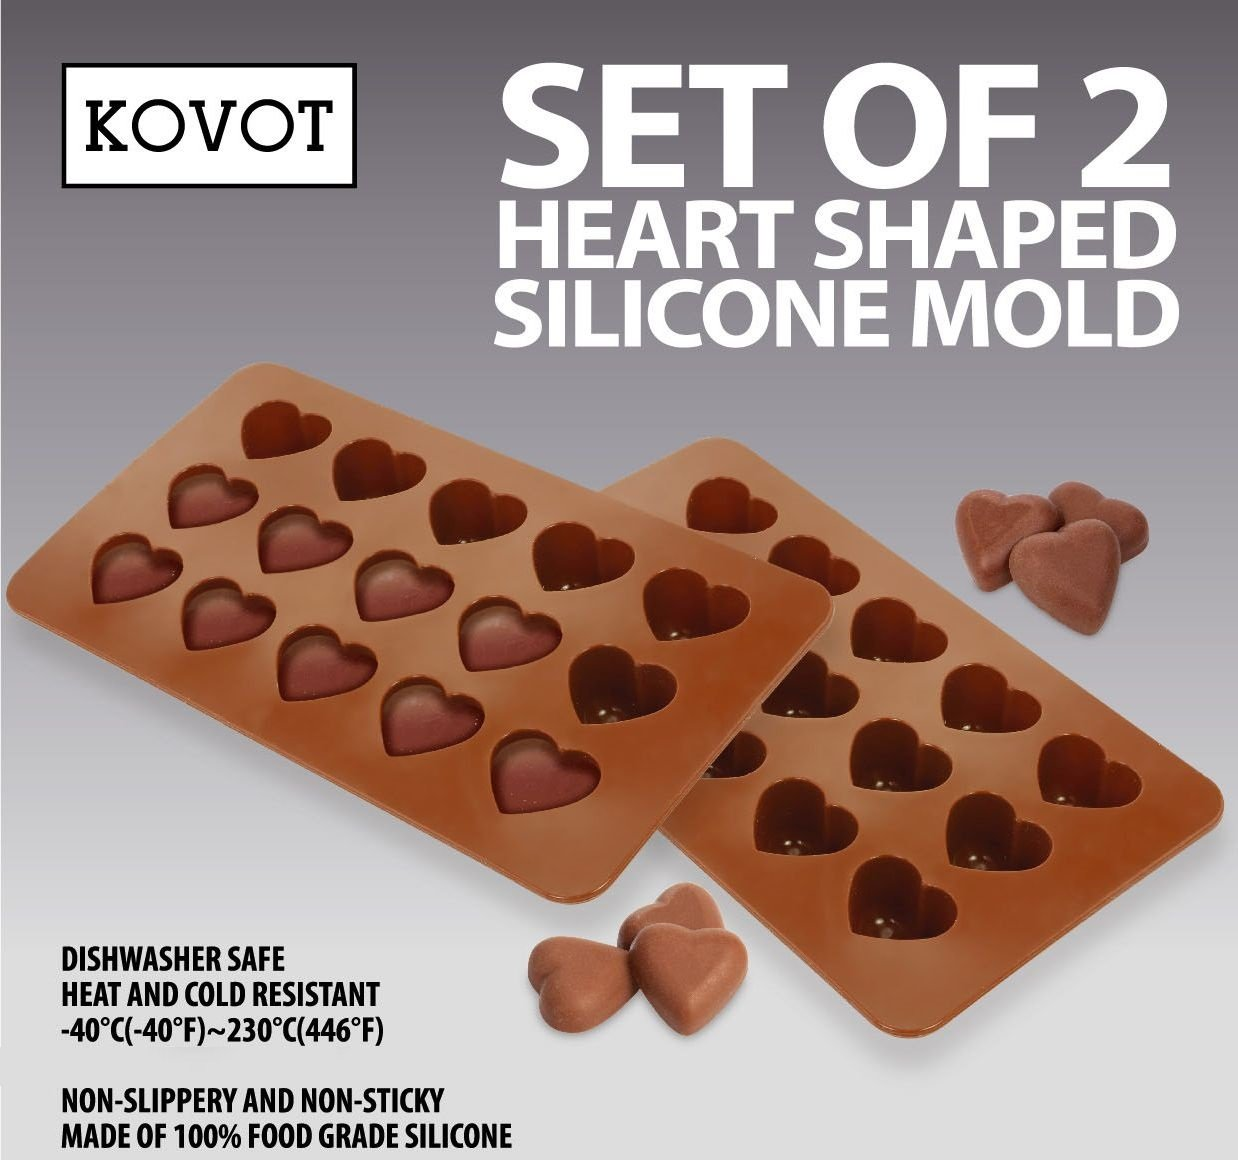 KOVOT Heart Shaped Silicone Molds – Set of 2 – Creates Heart-Shaped Chocolate, Jell-O, Candy or Ice Cubes